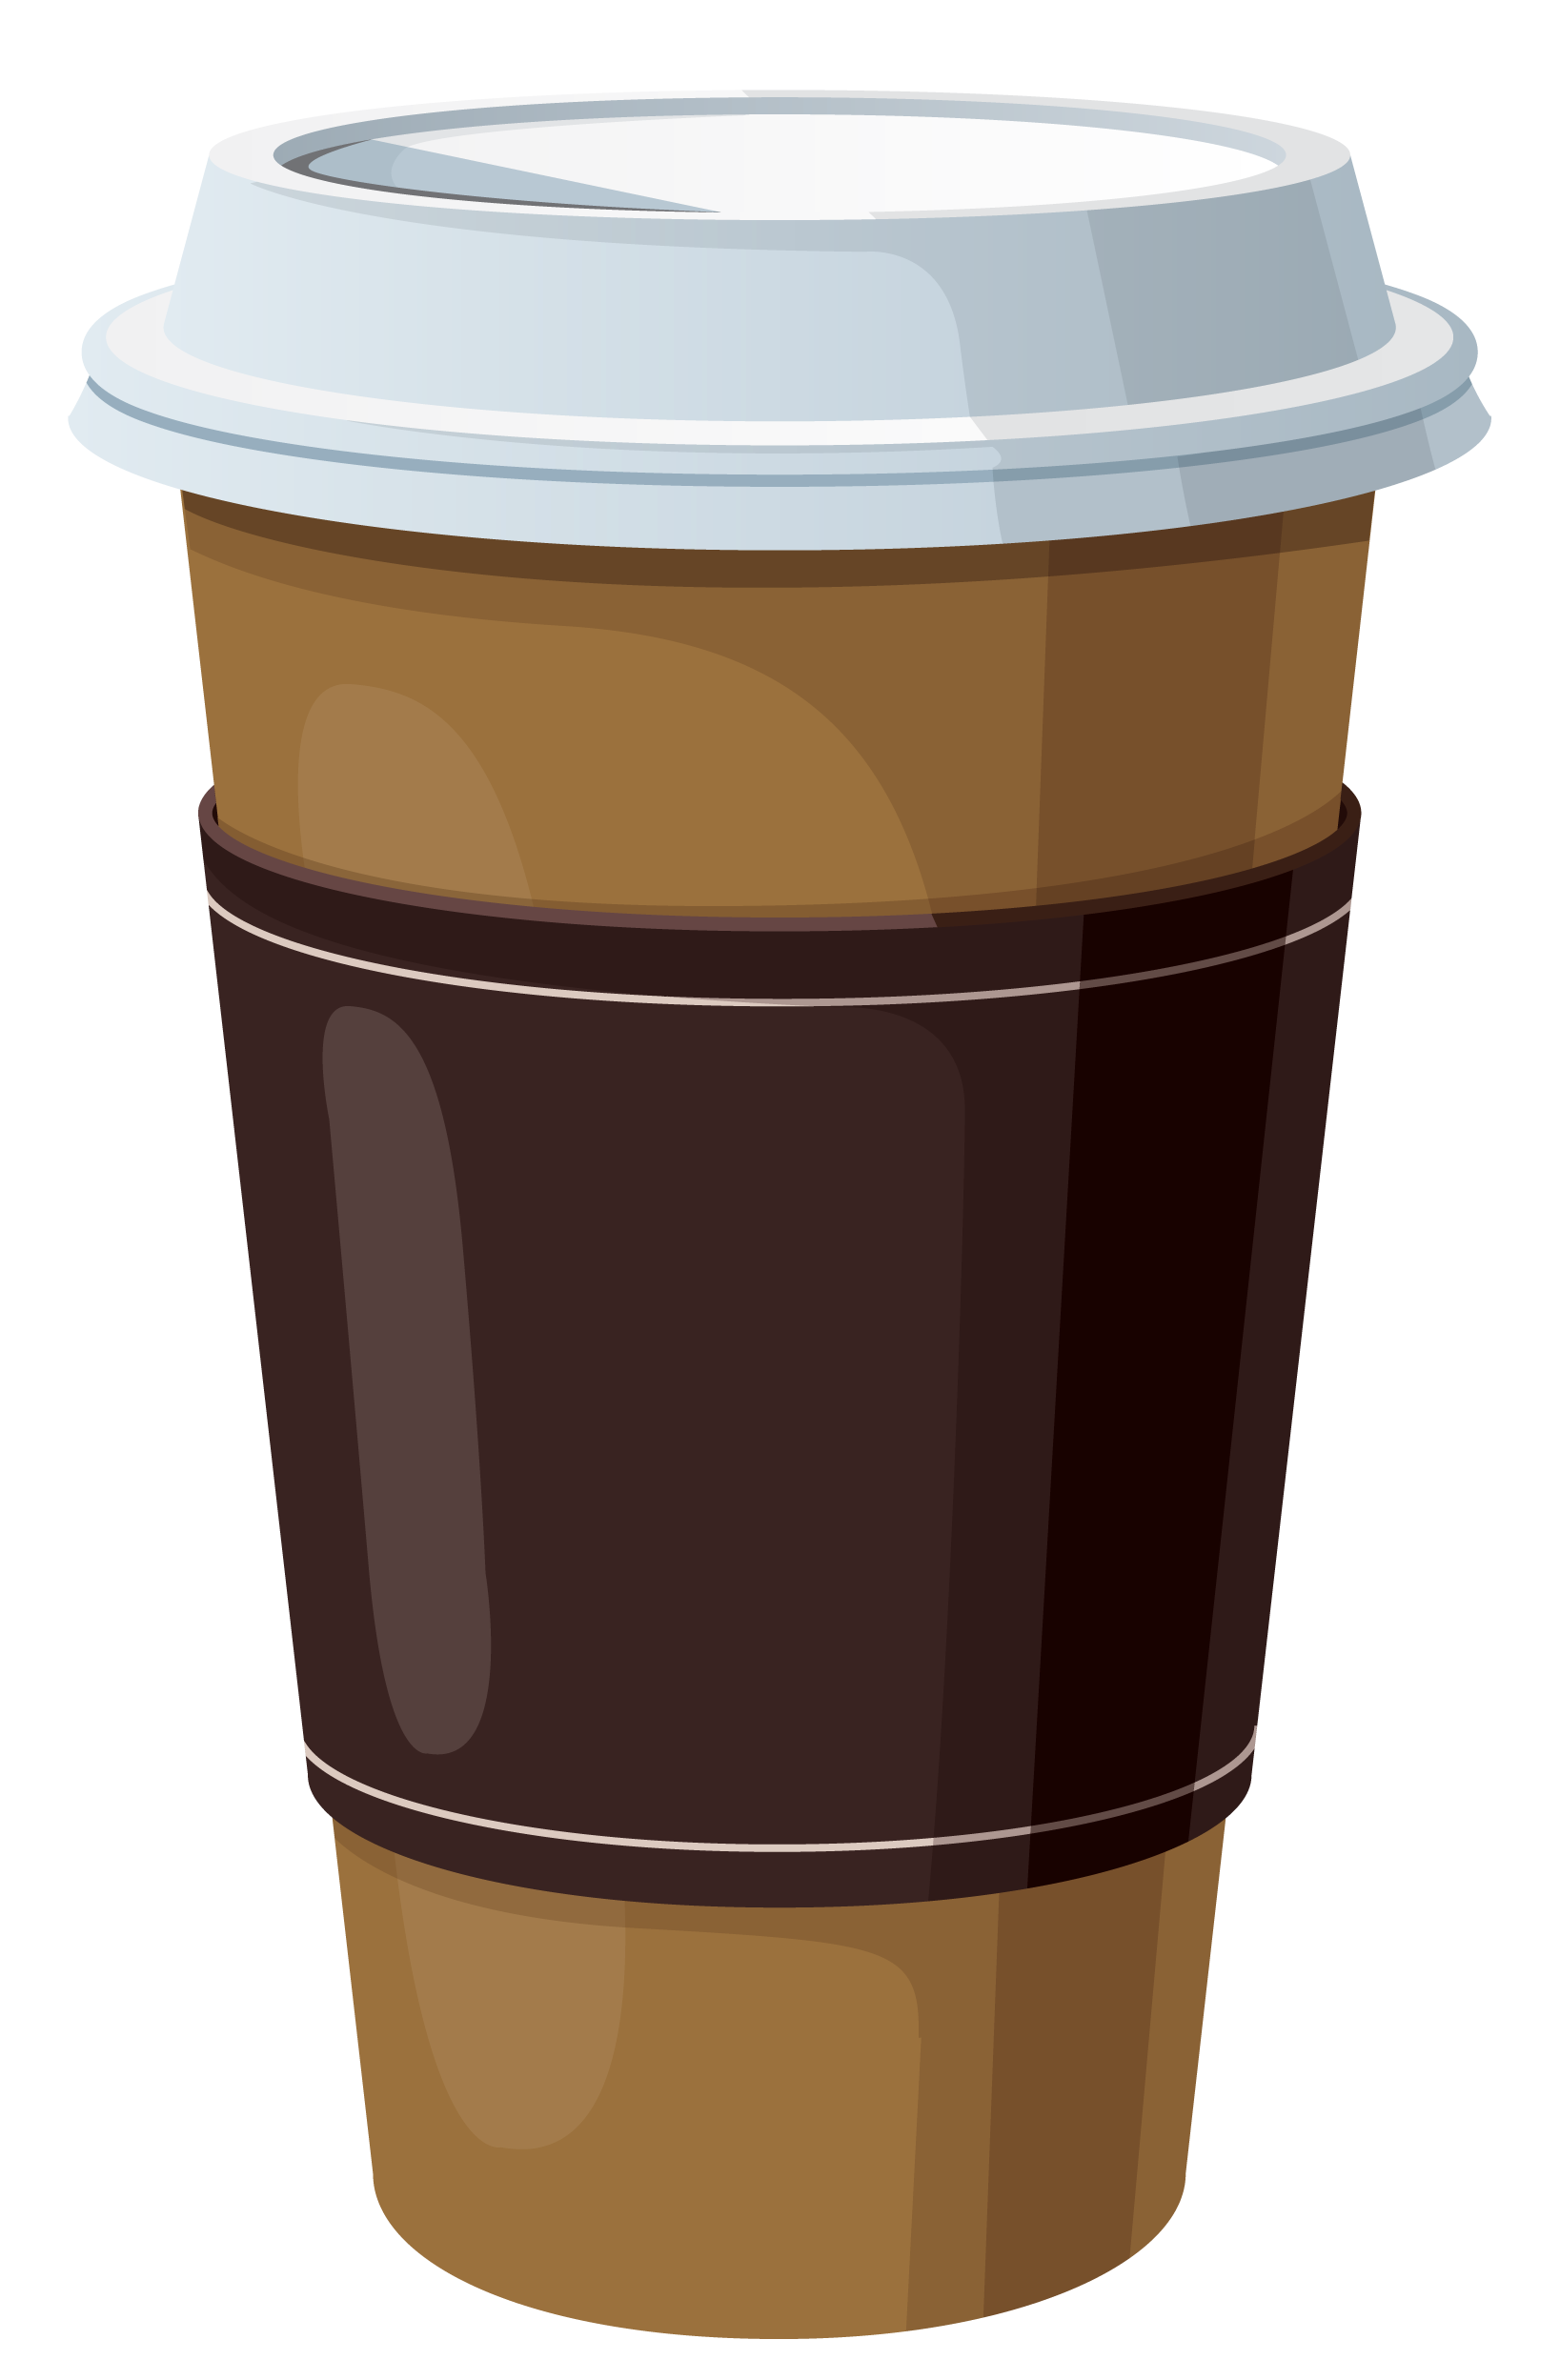 Winter clipart coffee. Prepare for some yummy